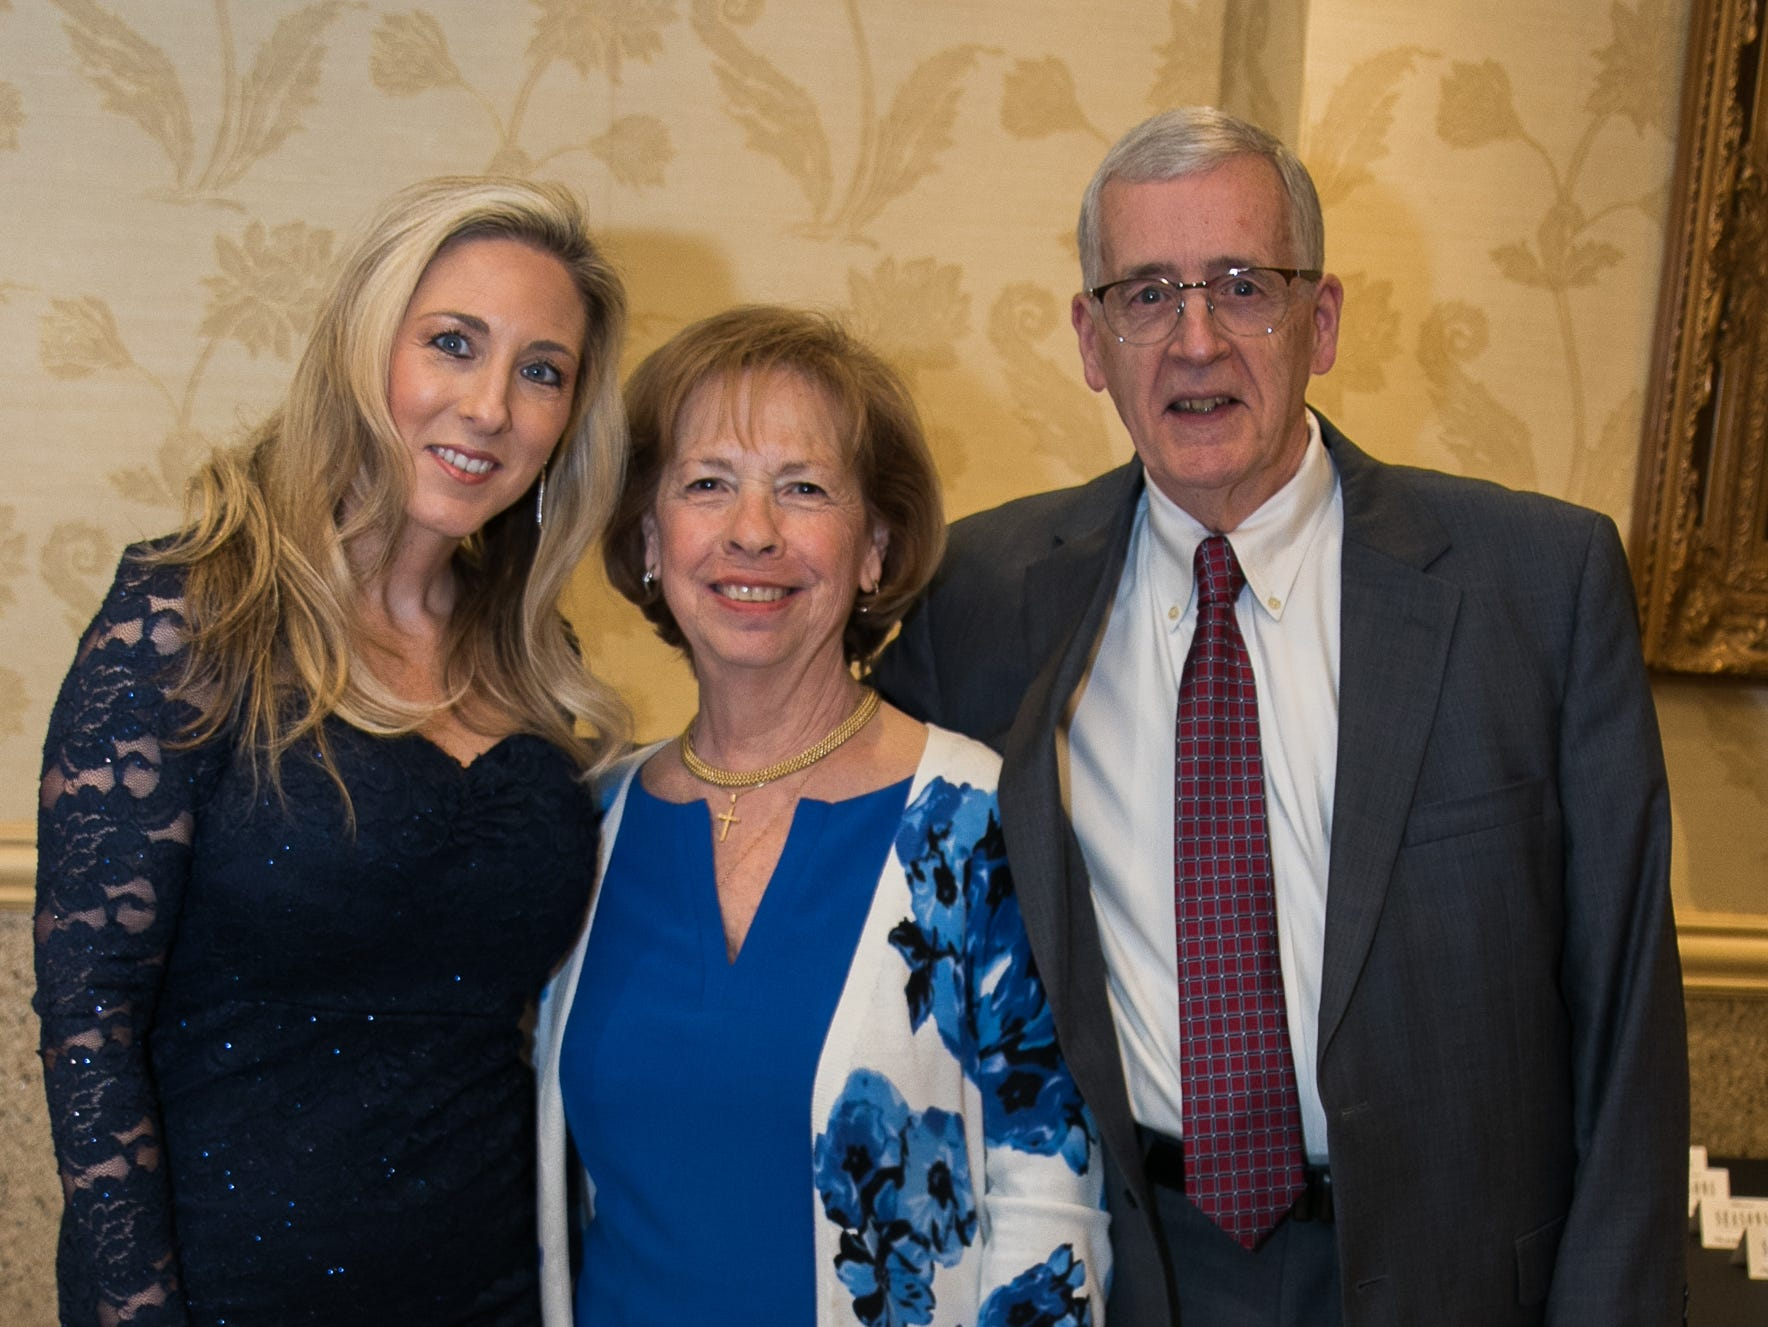 Kristy Fall, Marilyn Laquidara, Tim Dougherty. New Hope, a Pregnancy Resource Center, held their annual gala at Seasons in Washington Township. 04/05/2019